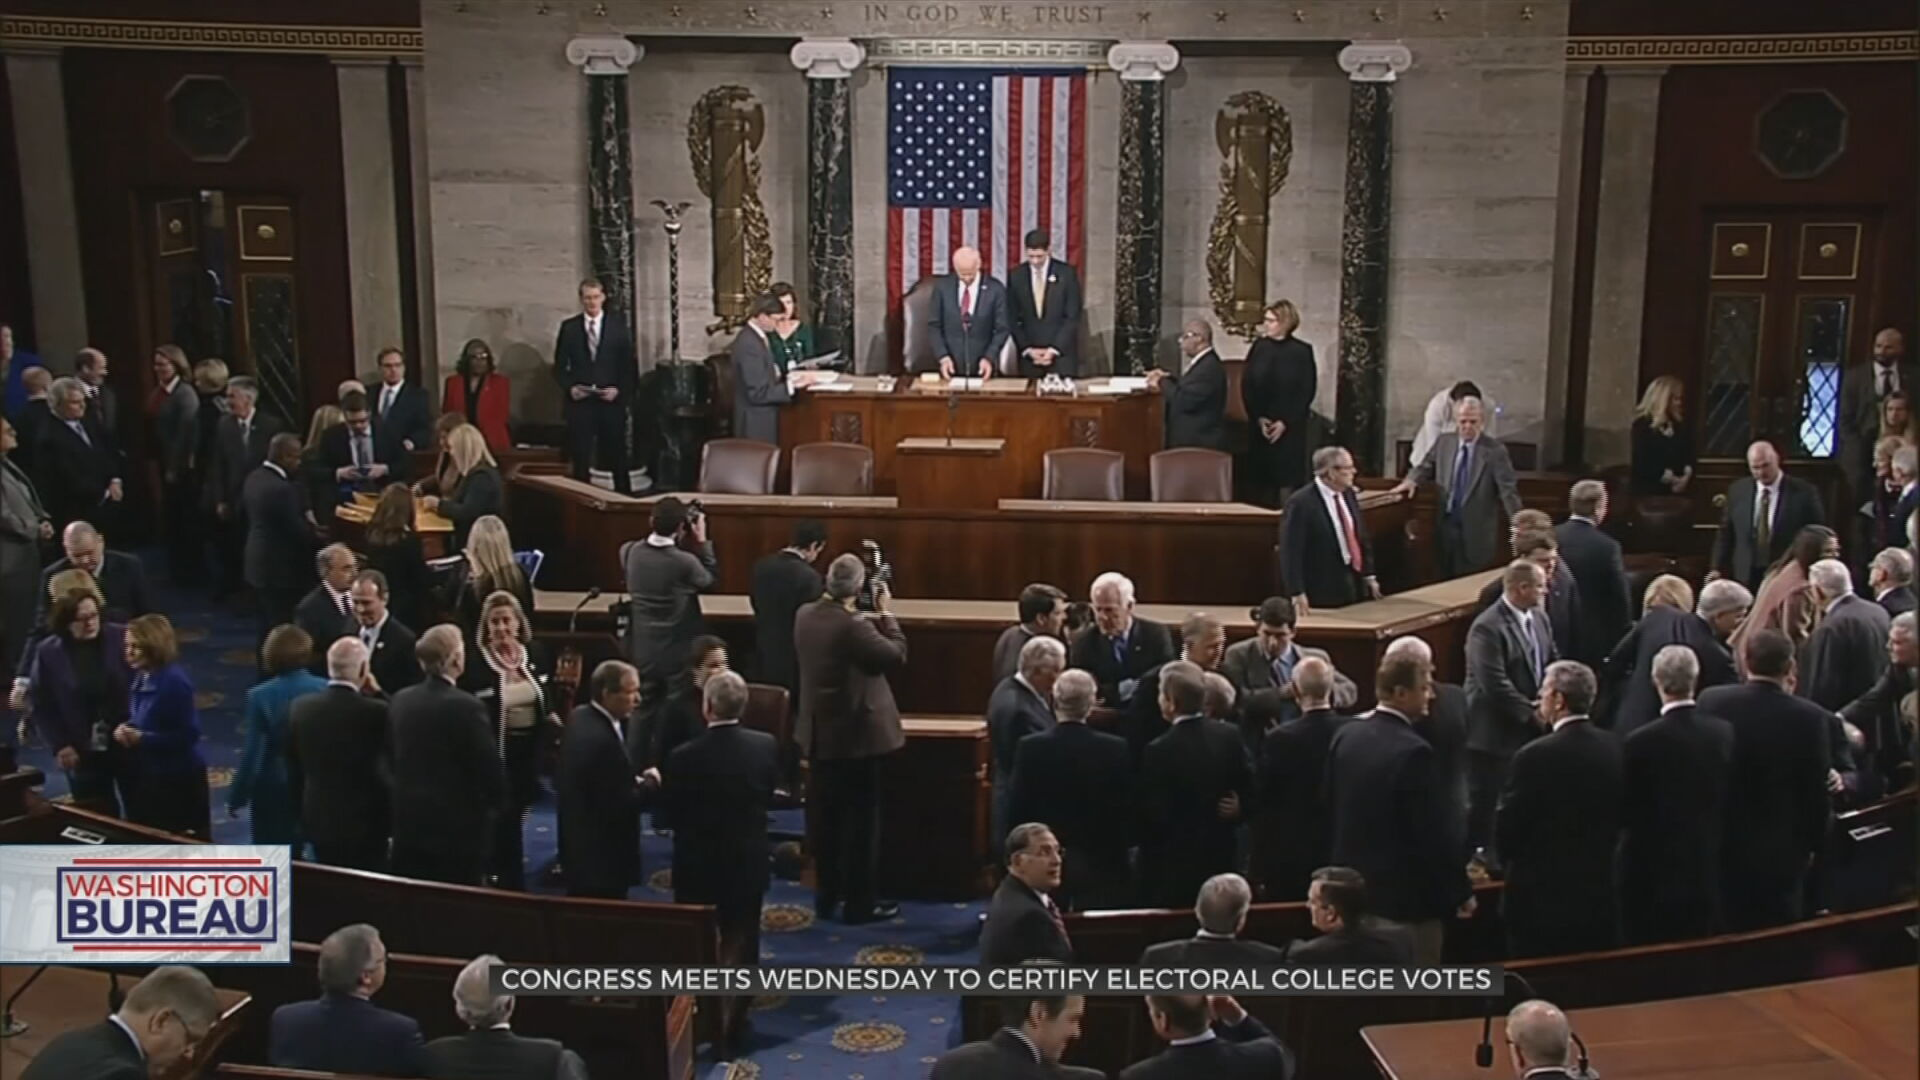 Congress Meets Wednesday To Certify Electoral College Votes